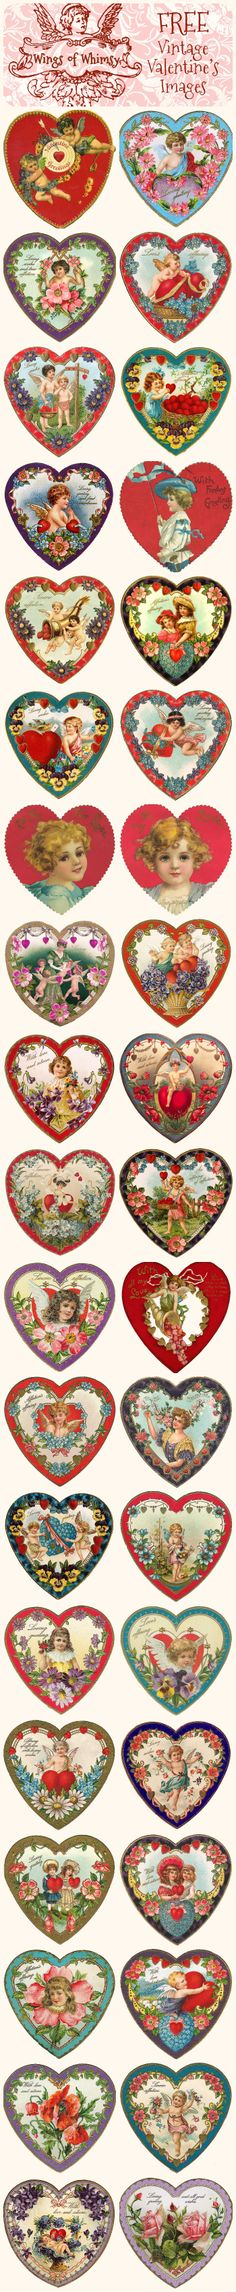 Wings of Whimsy: Valentine Hearts - free for personal use